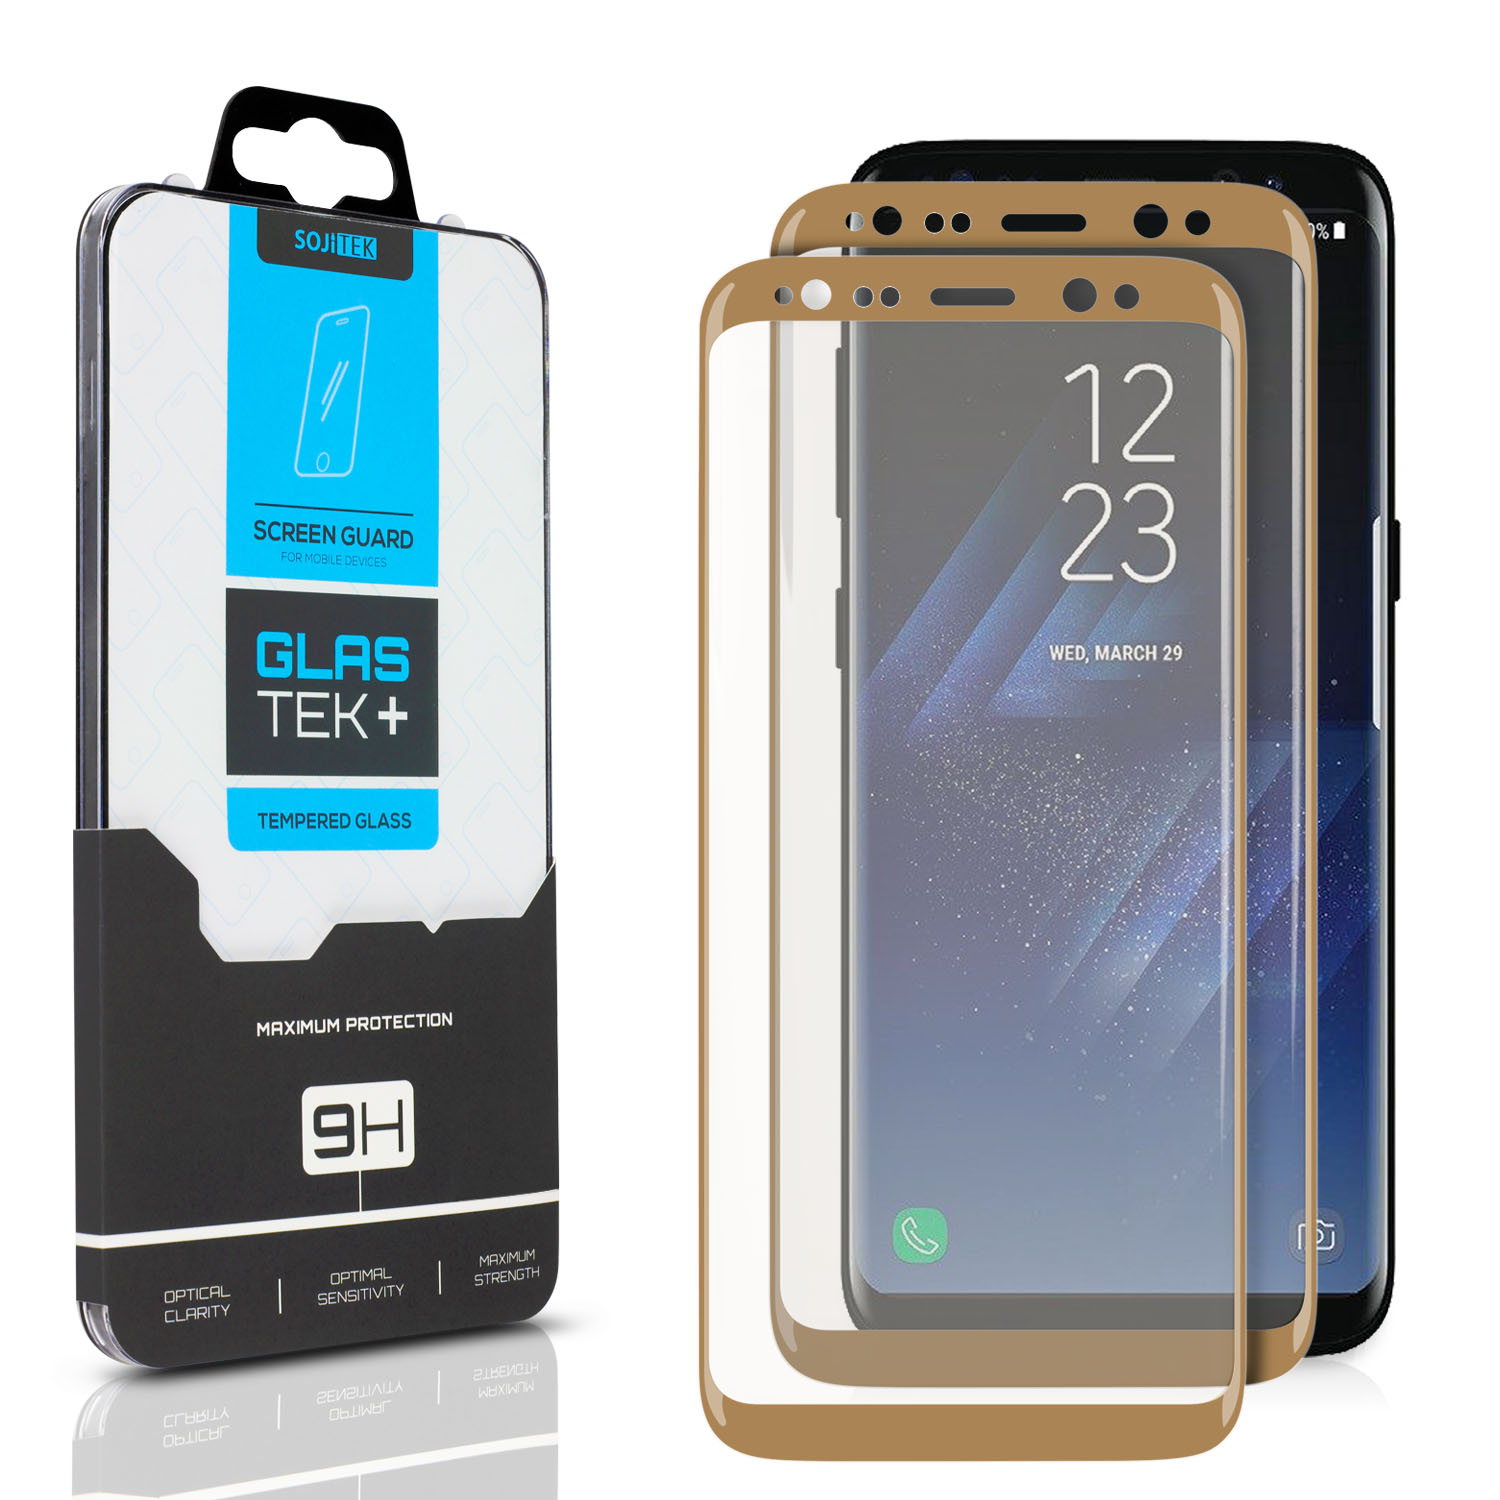 SOJITEK Samsung Galaxy S8 Screen Protector, 2 Pack, Full Coverage 3D Tempered Glass (Sticking well to sides / No losing adhesive side) - Black